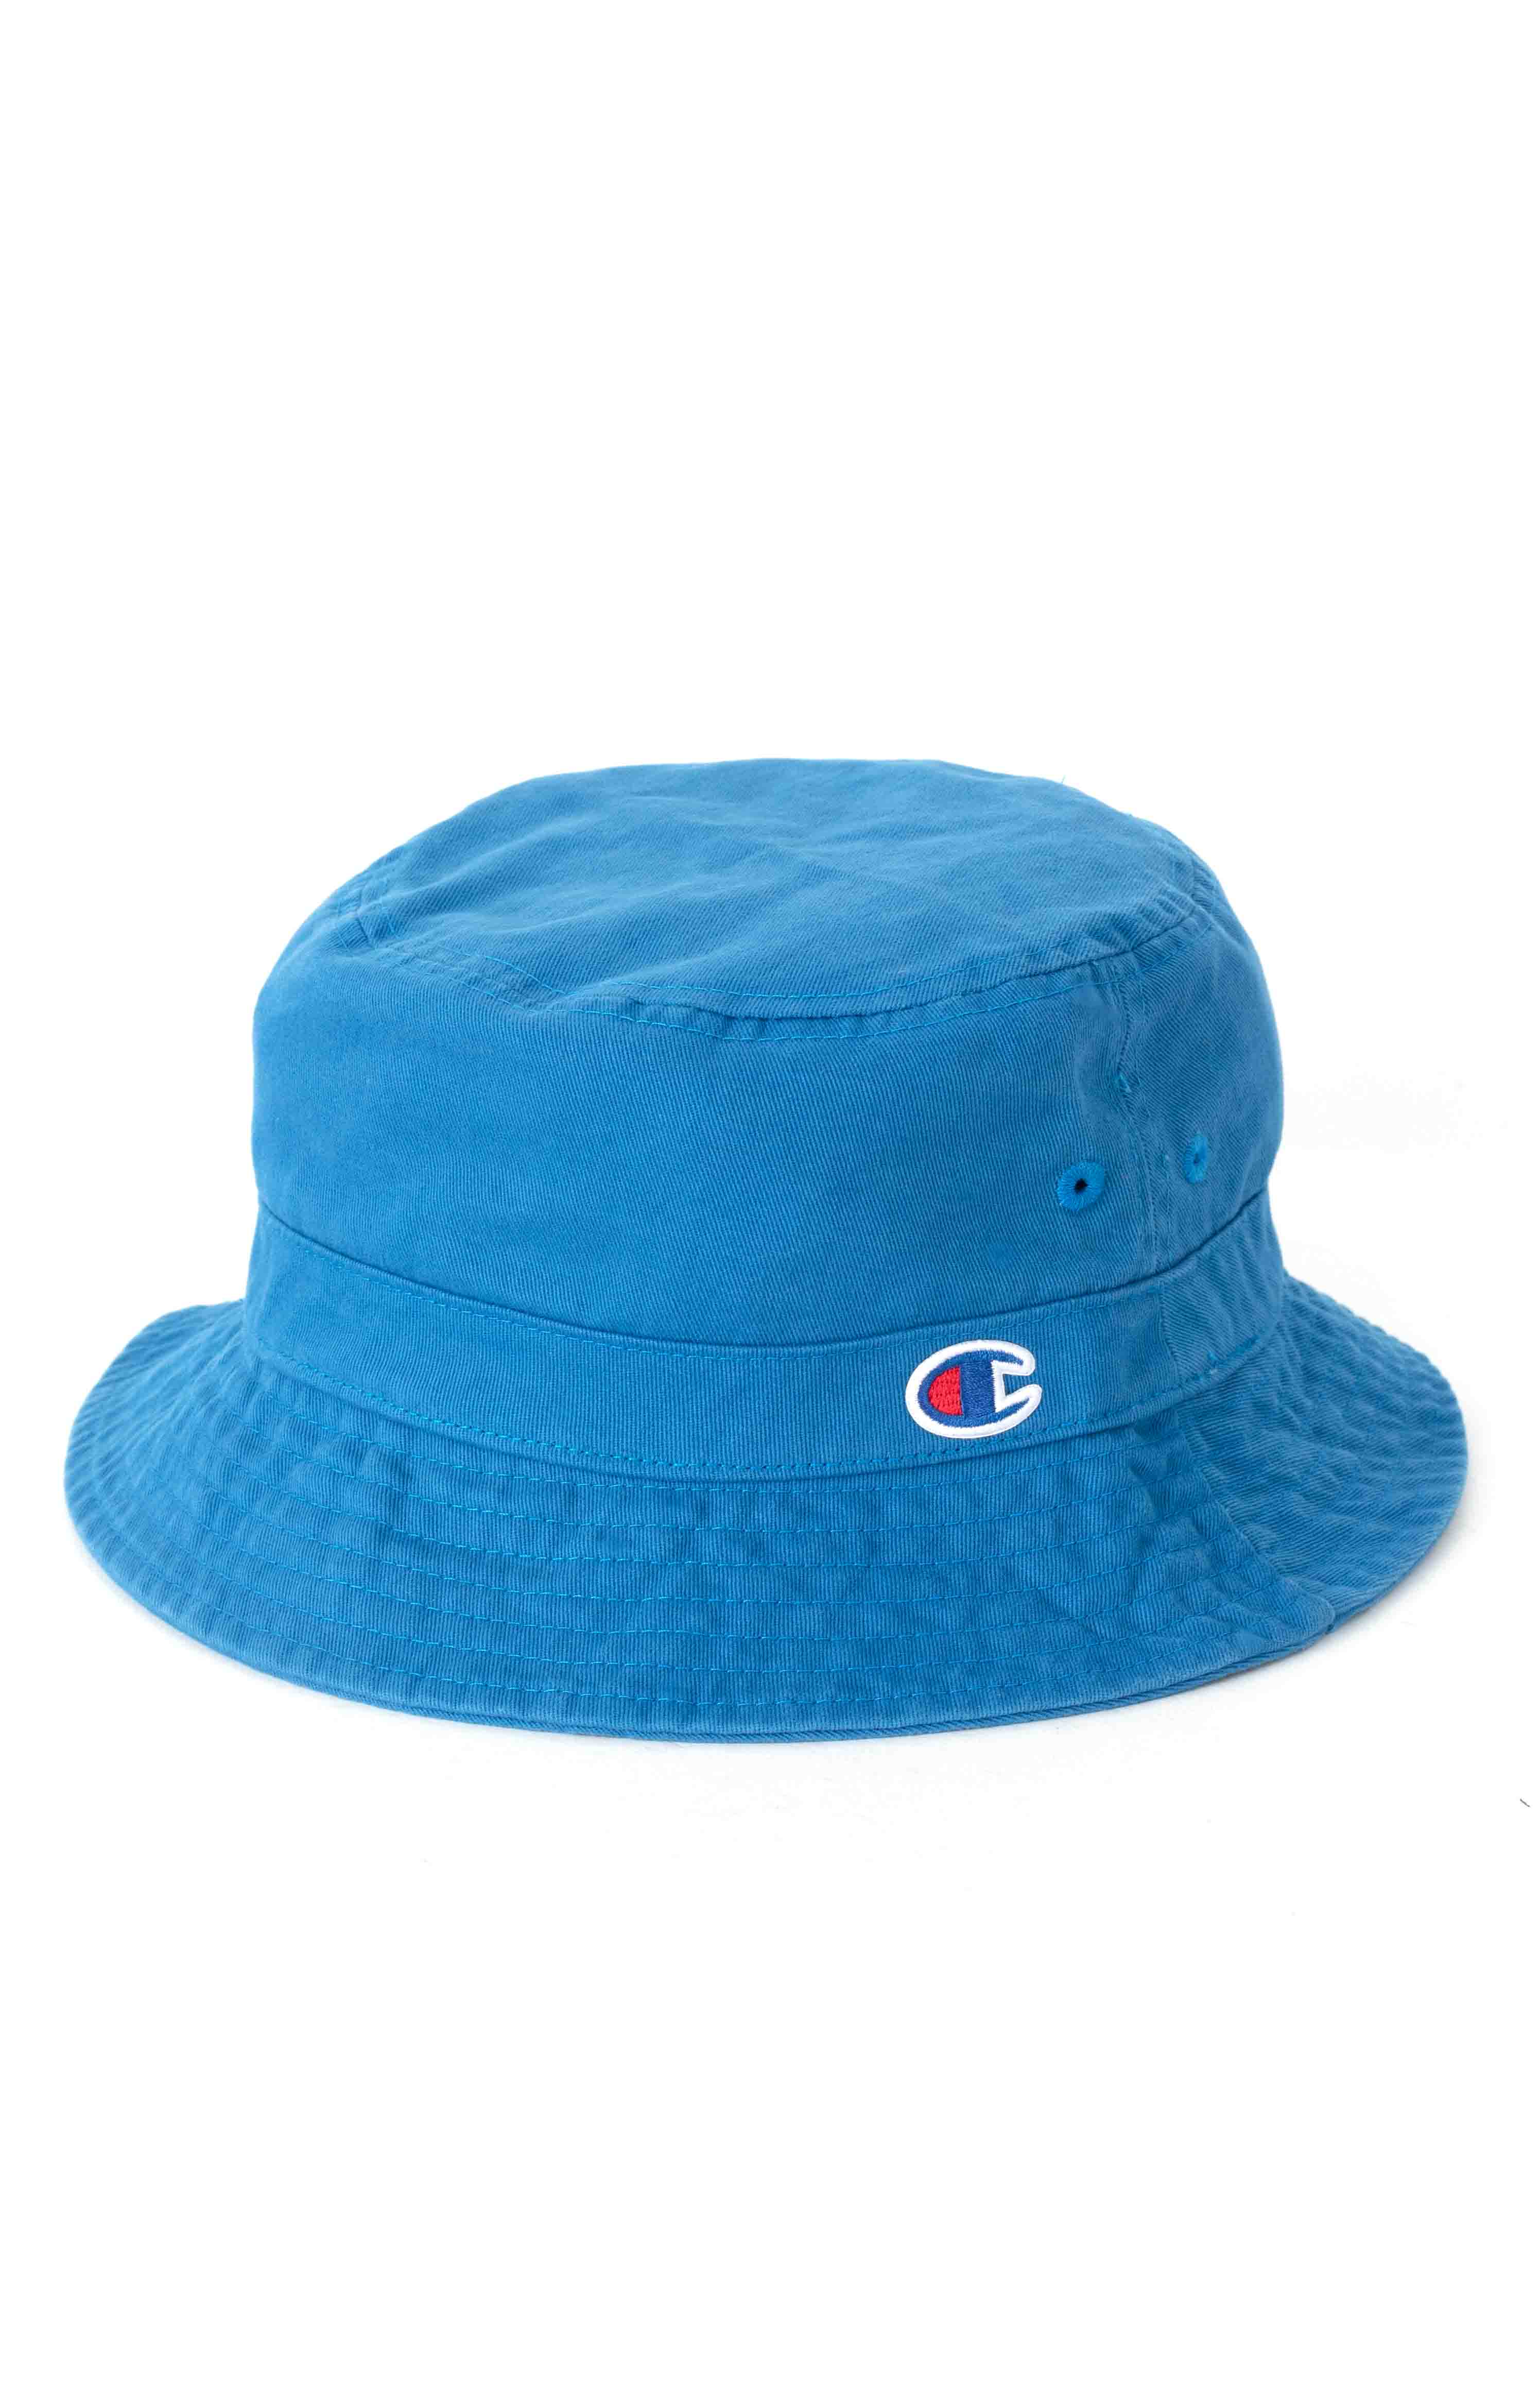 Garment Washed Relaxed Bucket Hat - Living In Blue  2